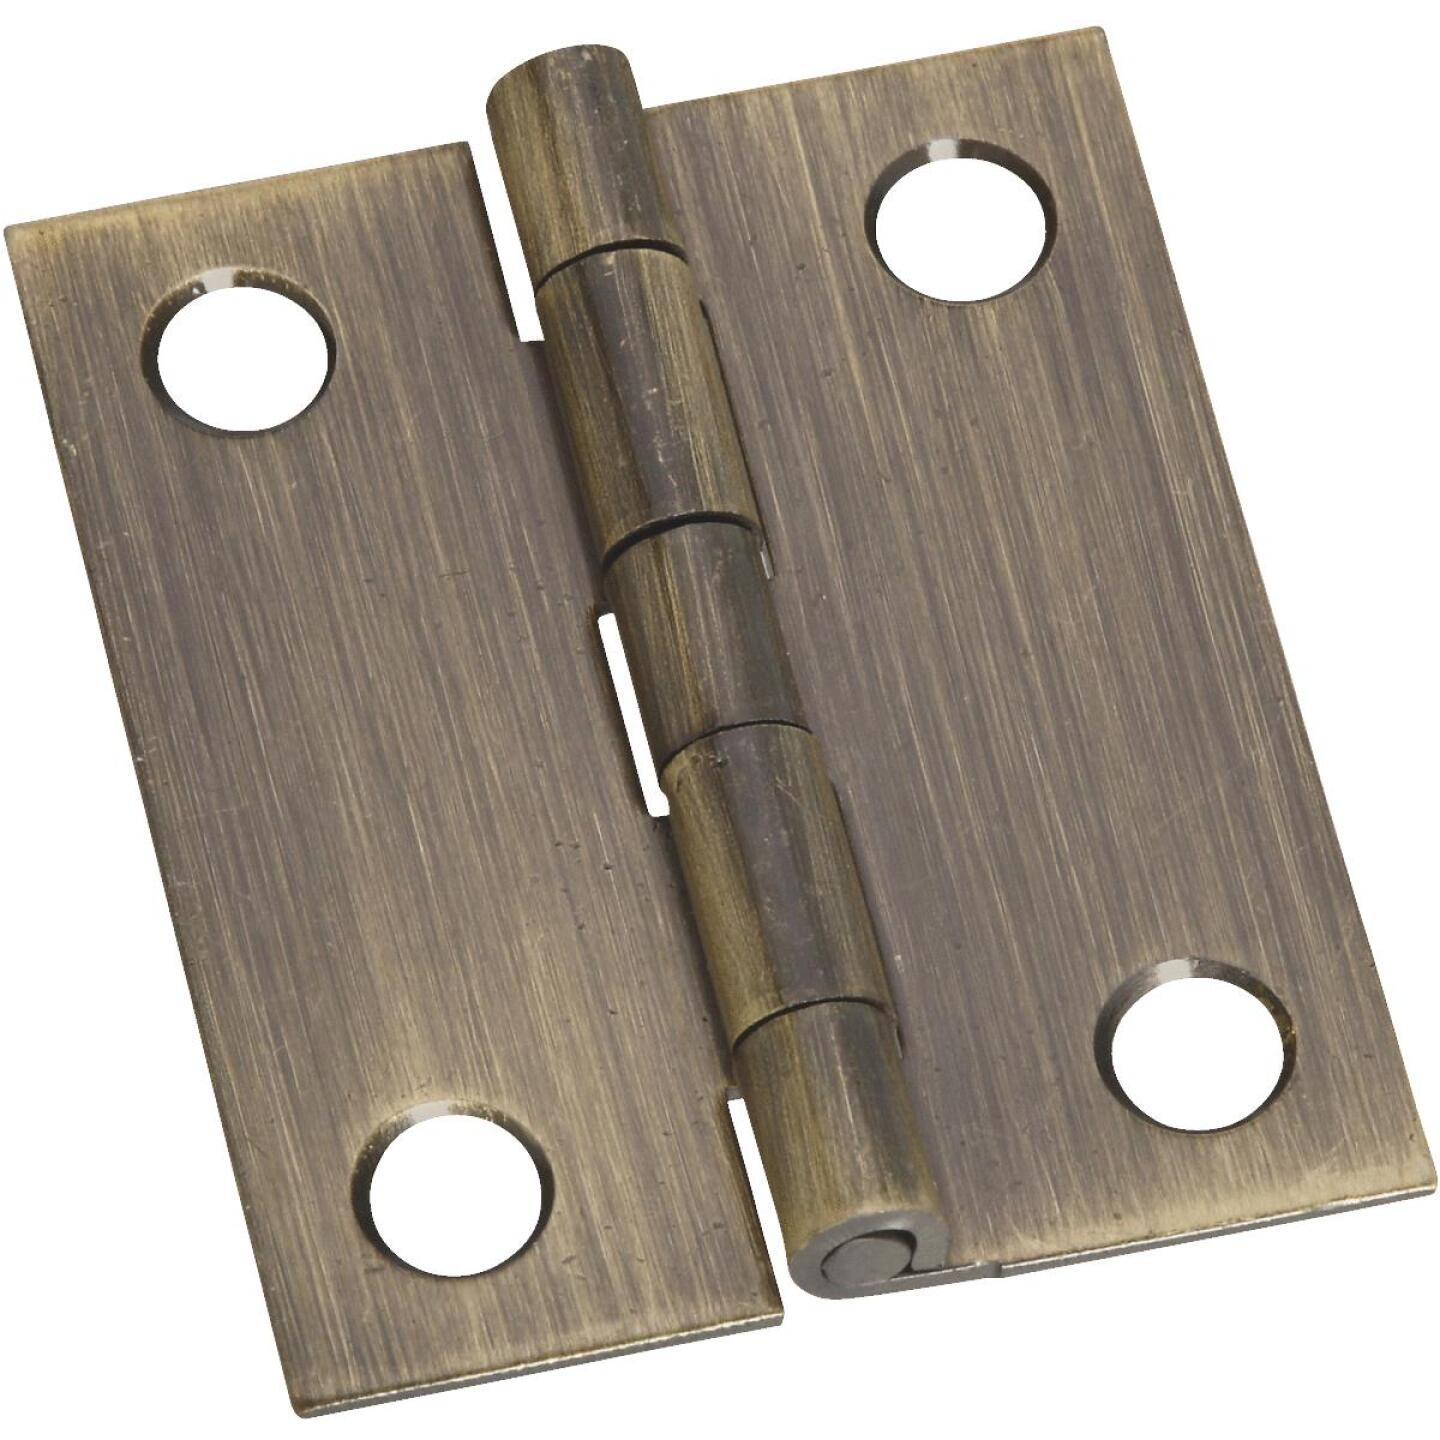 National 1-1/4 In. x 1-1/2 In. Antique Brass Hinge (2-Pack) Image 1